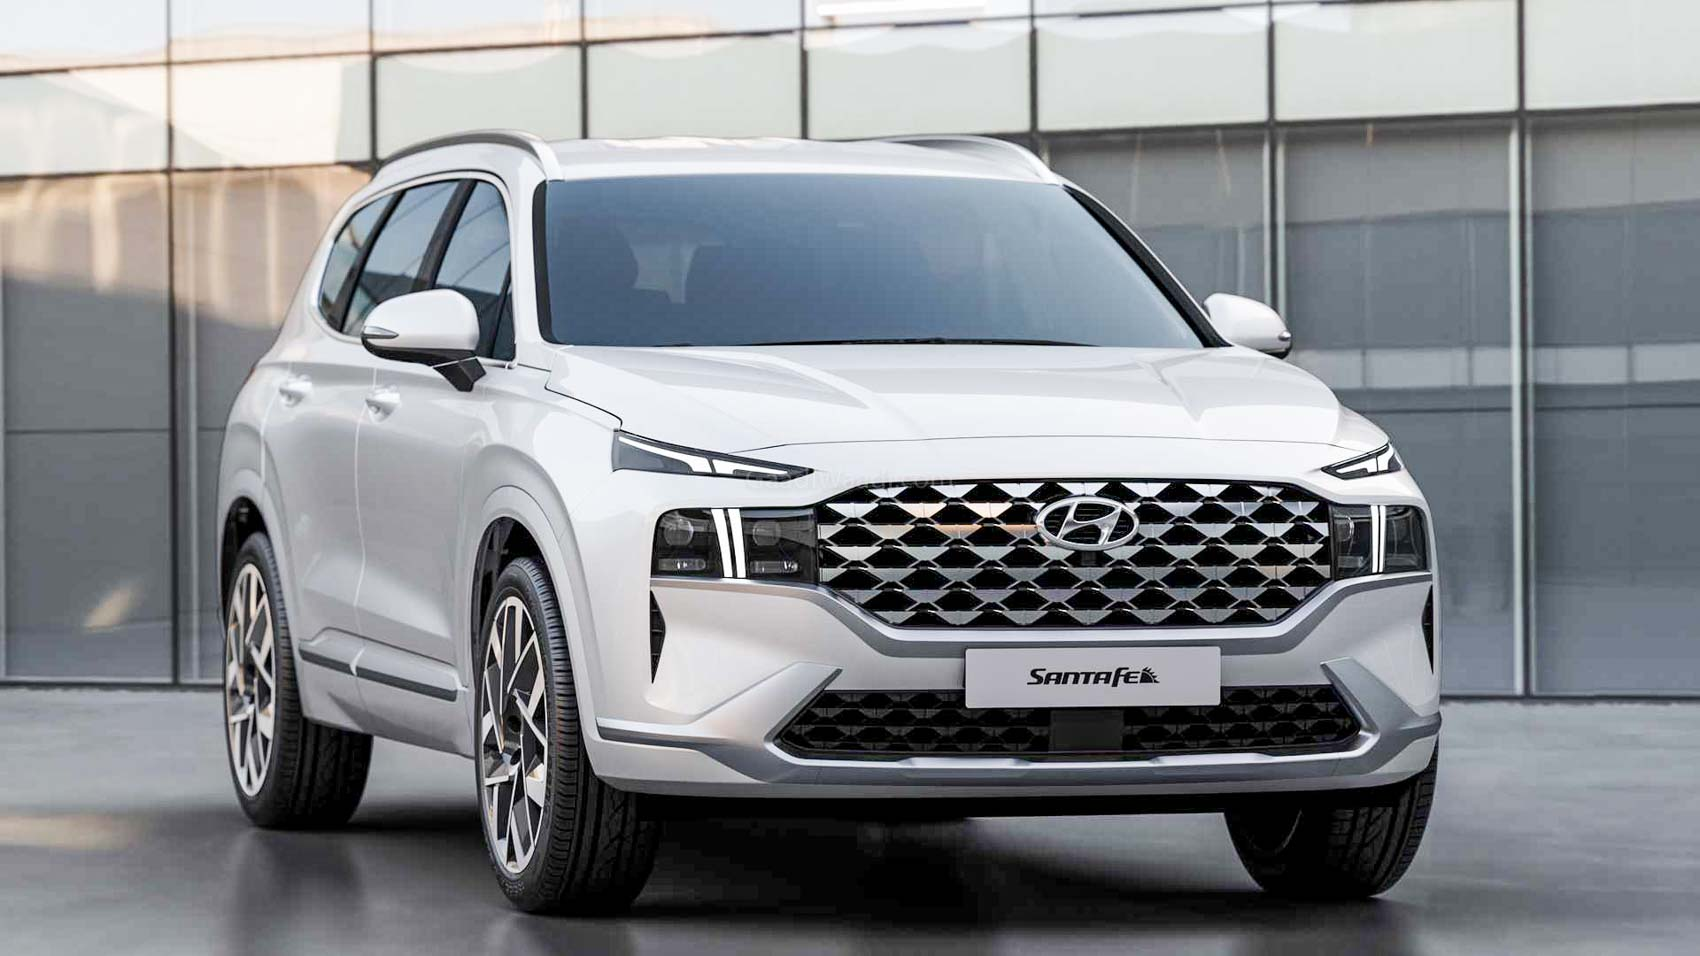 Hybrid And PHEV System Of 2021 Hyundai Santa Fe Explained